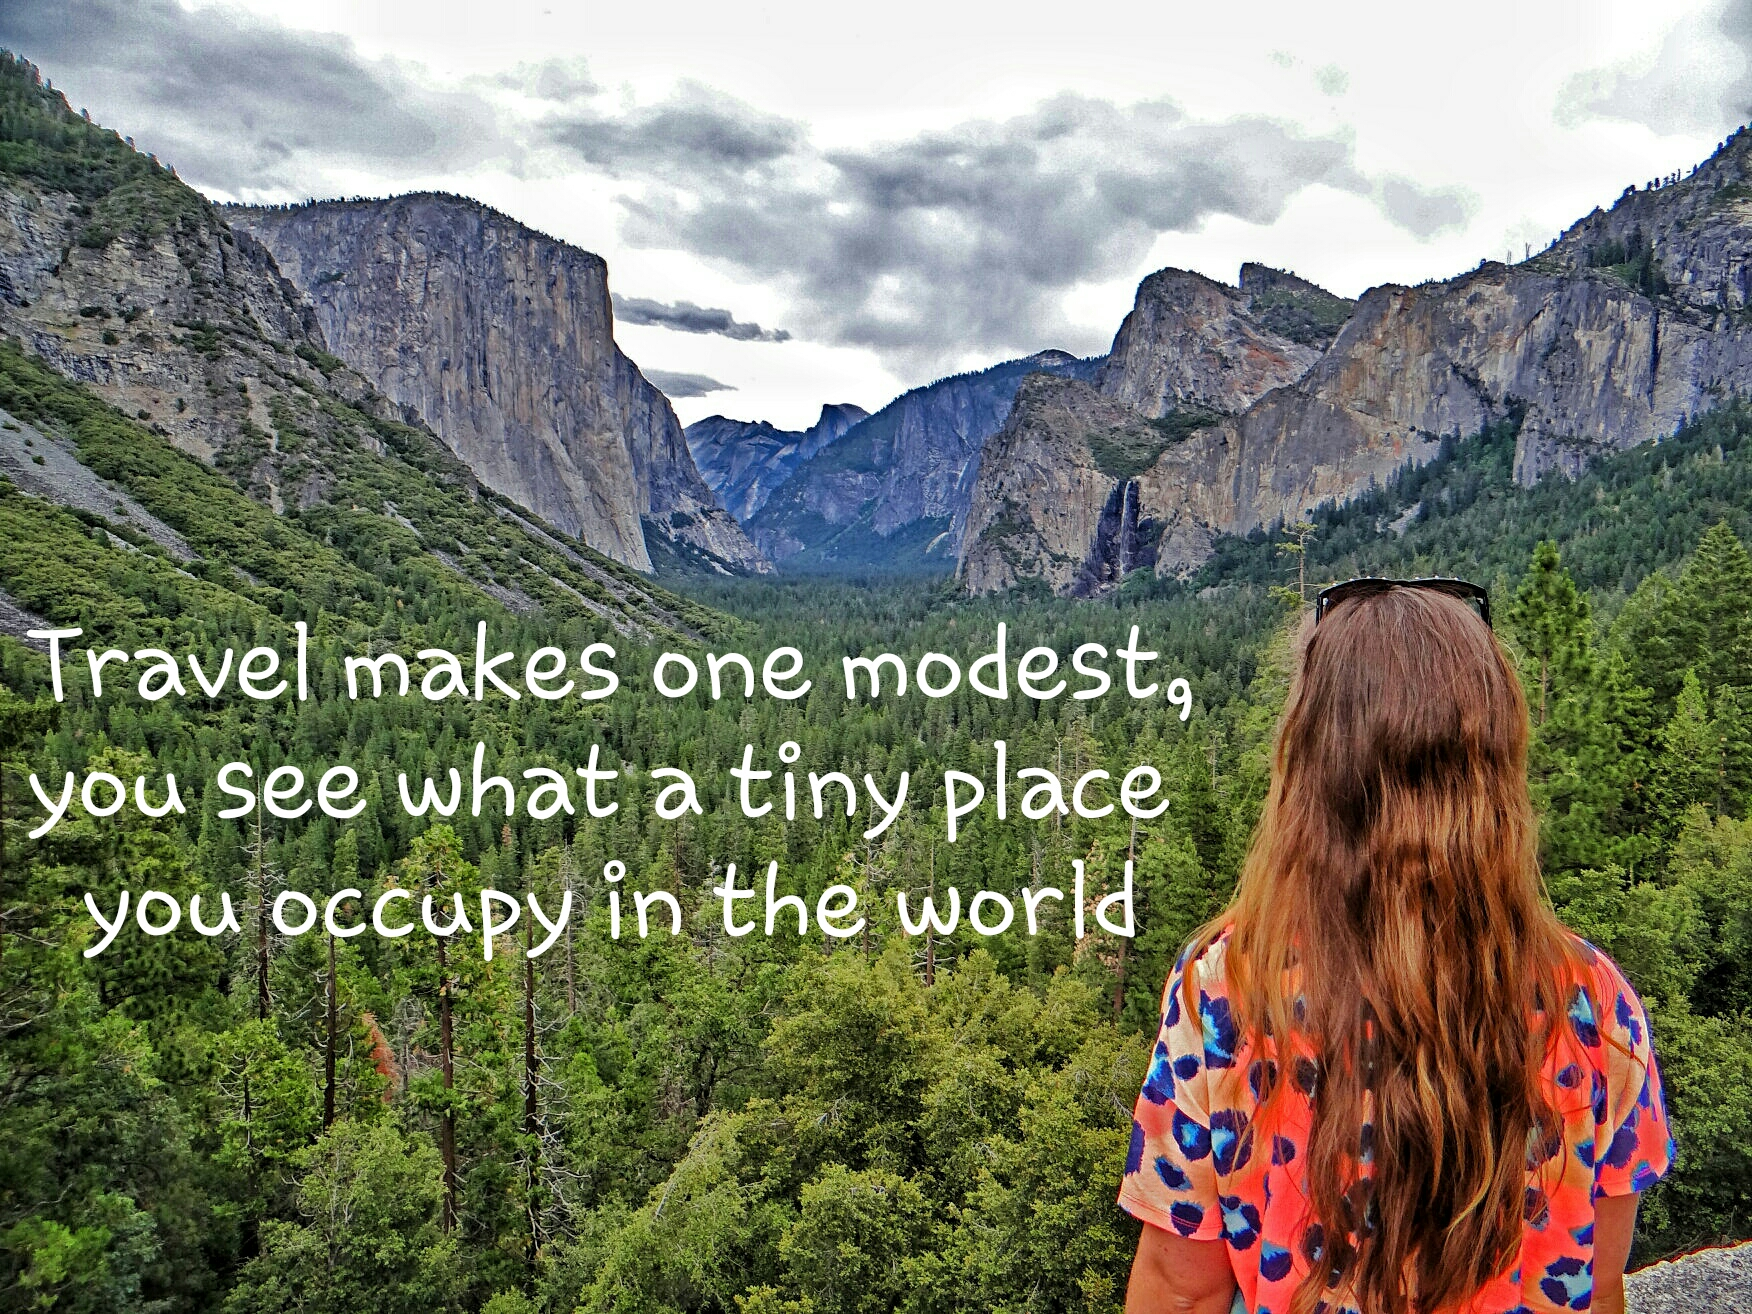 15 Inspiring Travel Quotes To Start Packing Your Bags